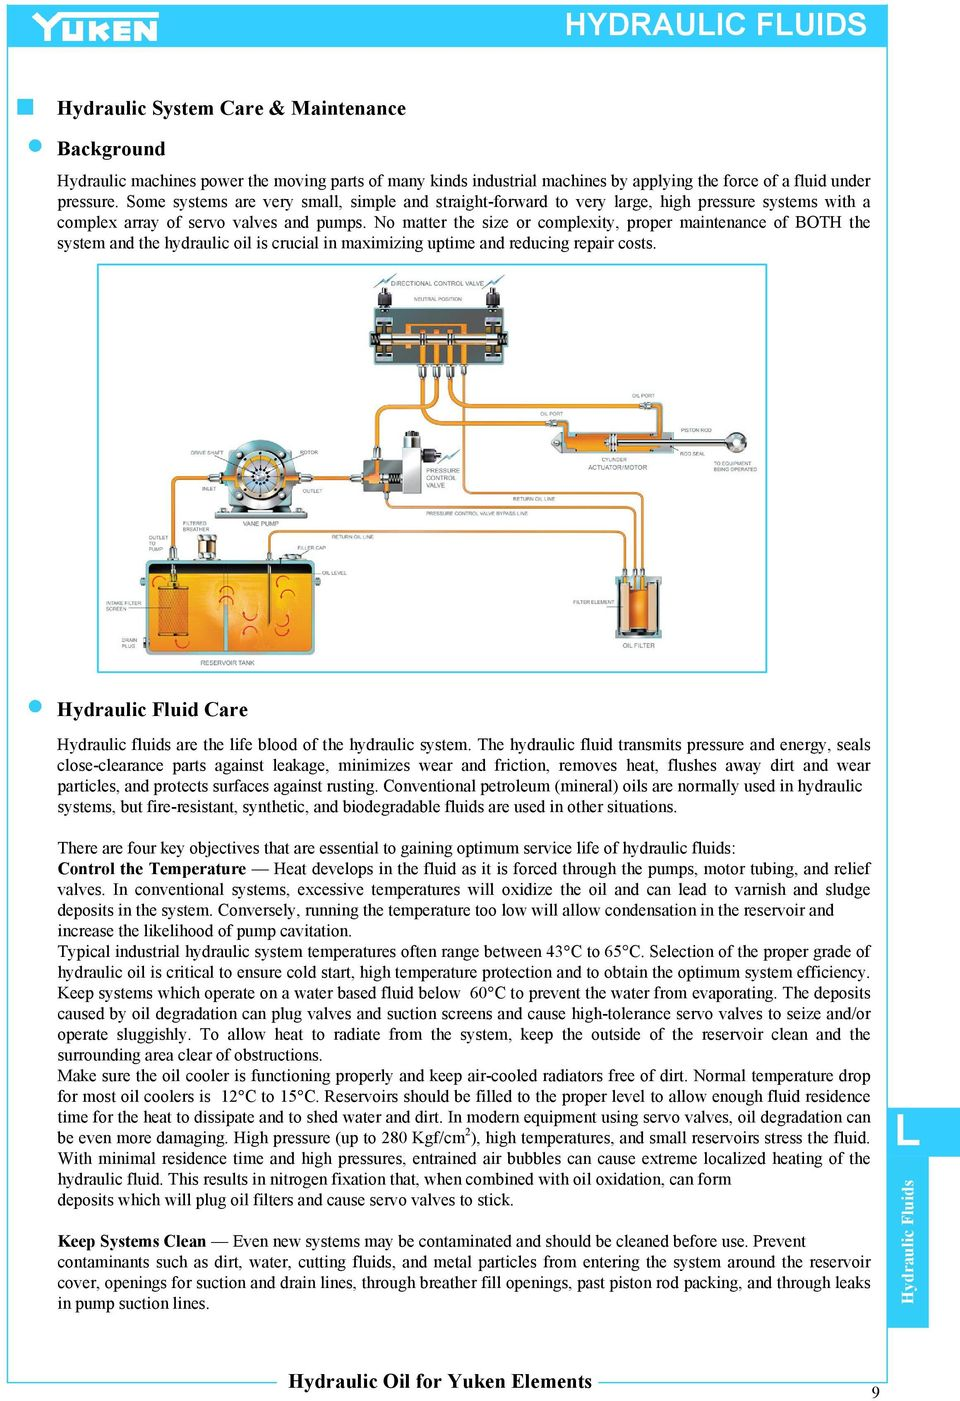 Classification And Characteristics Contamination Control Hydraulic Simple System Diagram Industrial Hydraulics No Matter The Size Or Complexity Proper Maintenance Of Both